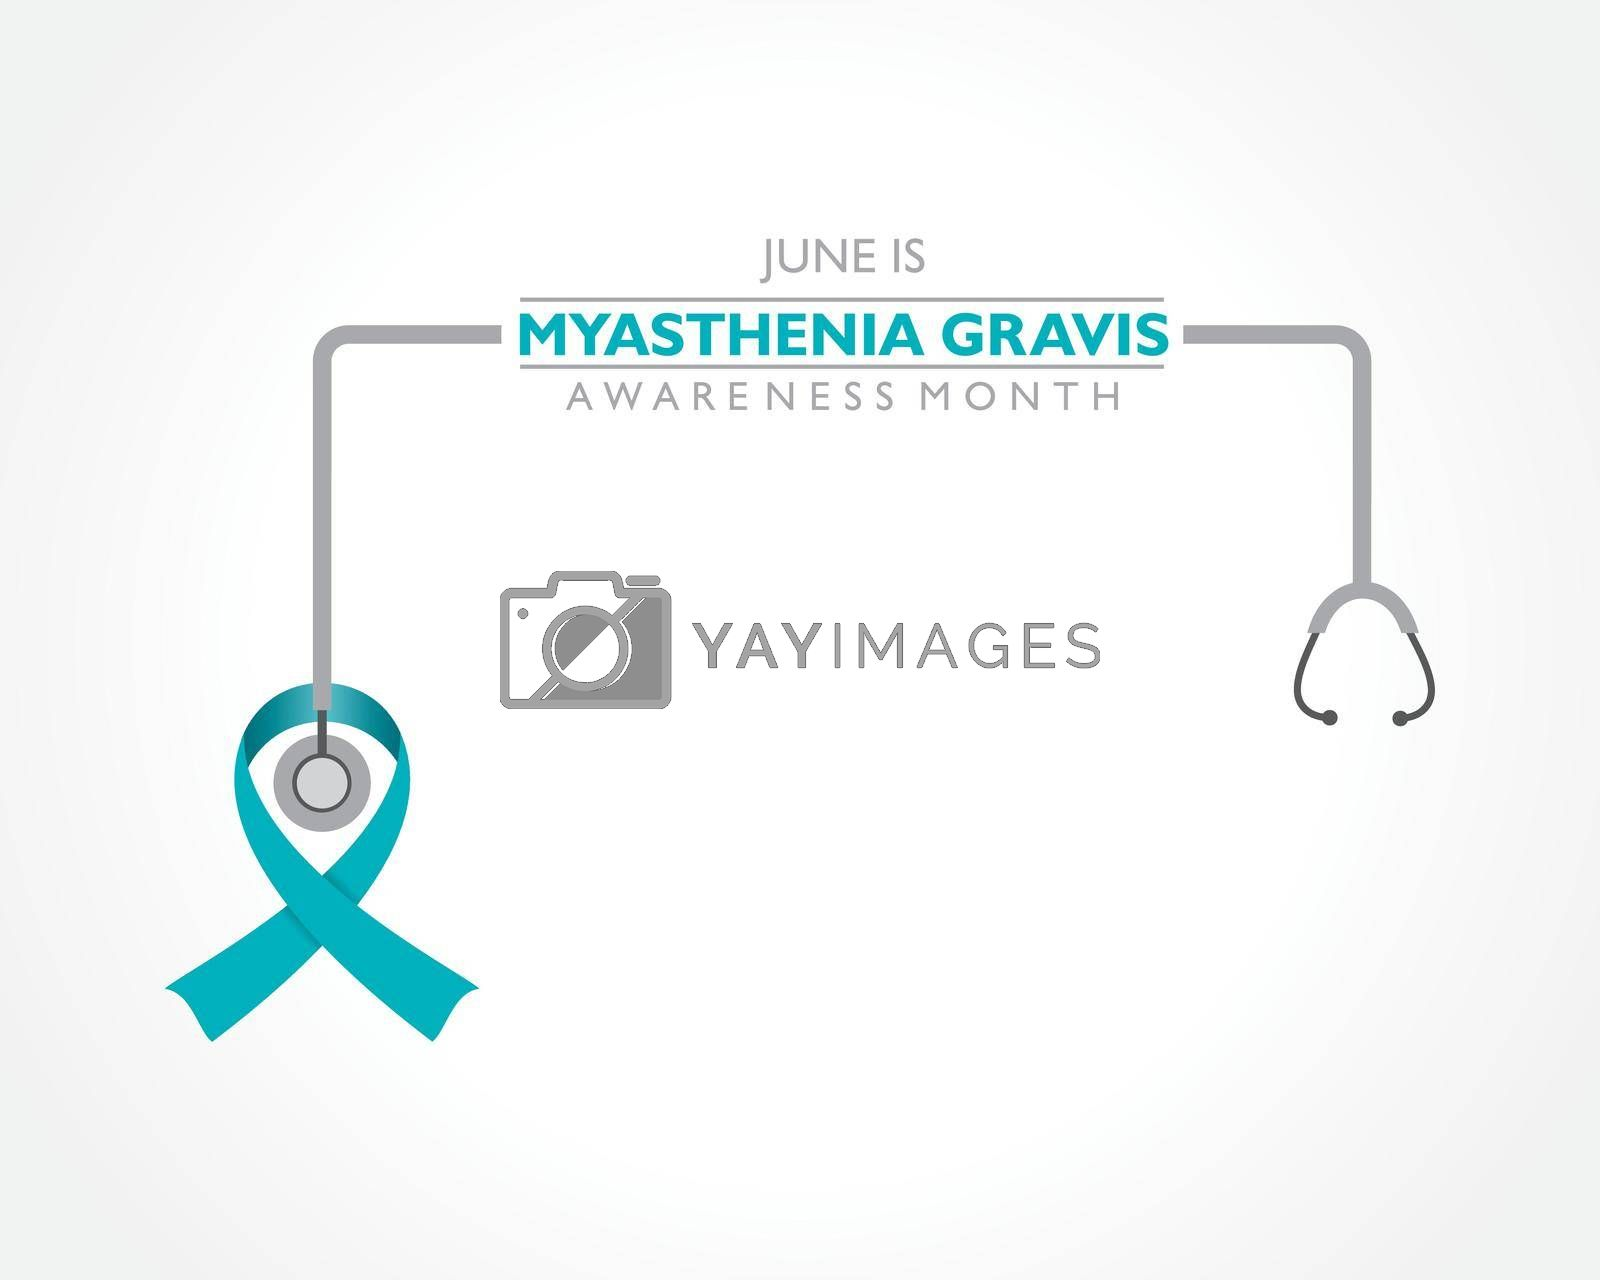 Royalty free image of Vector illustration of Myasthenia Gravis Awareness Month observed in June. by graphicsdunia4you